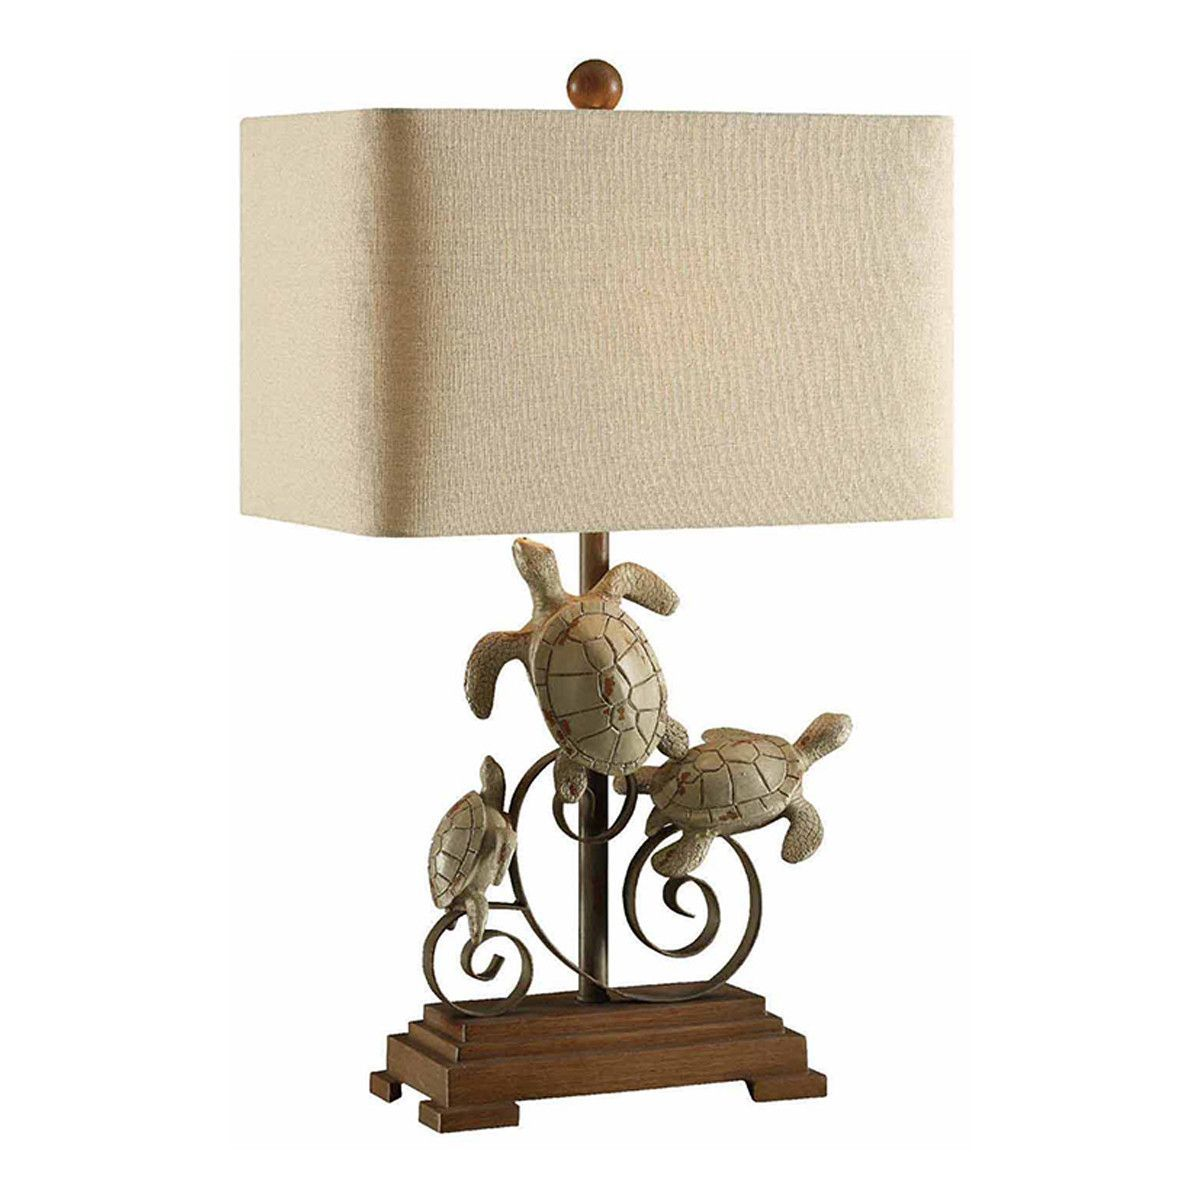 Turtle bay table lamp turtle bay turtle and products turtle bay table lamp mozeypictures Gallery